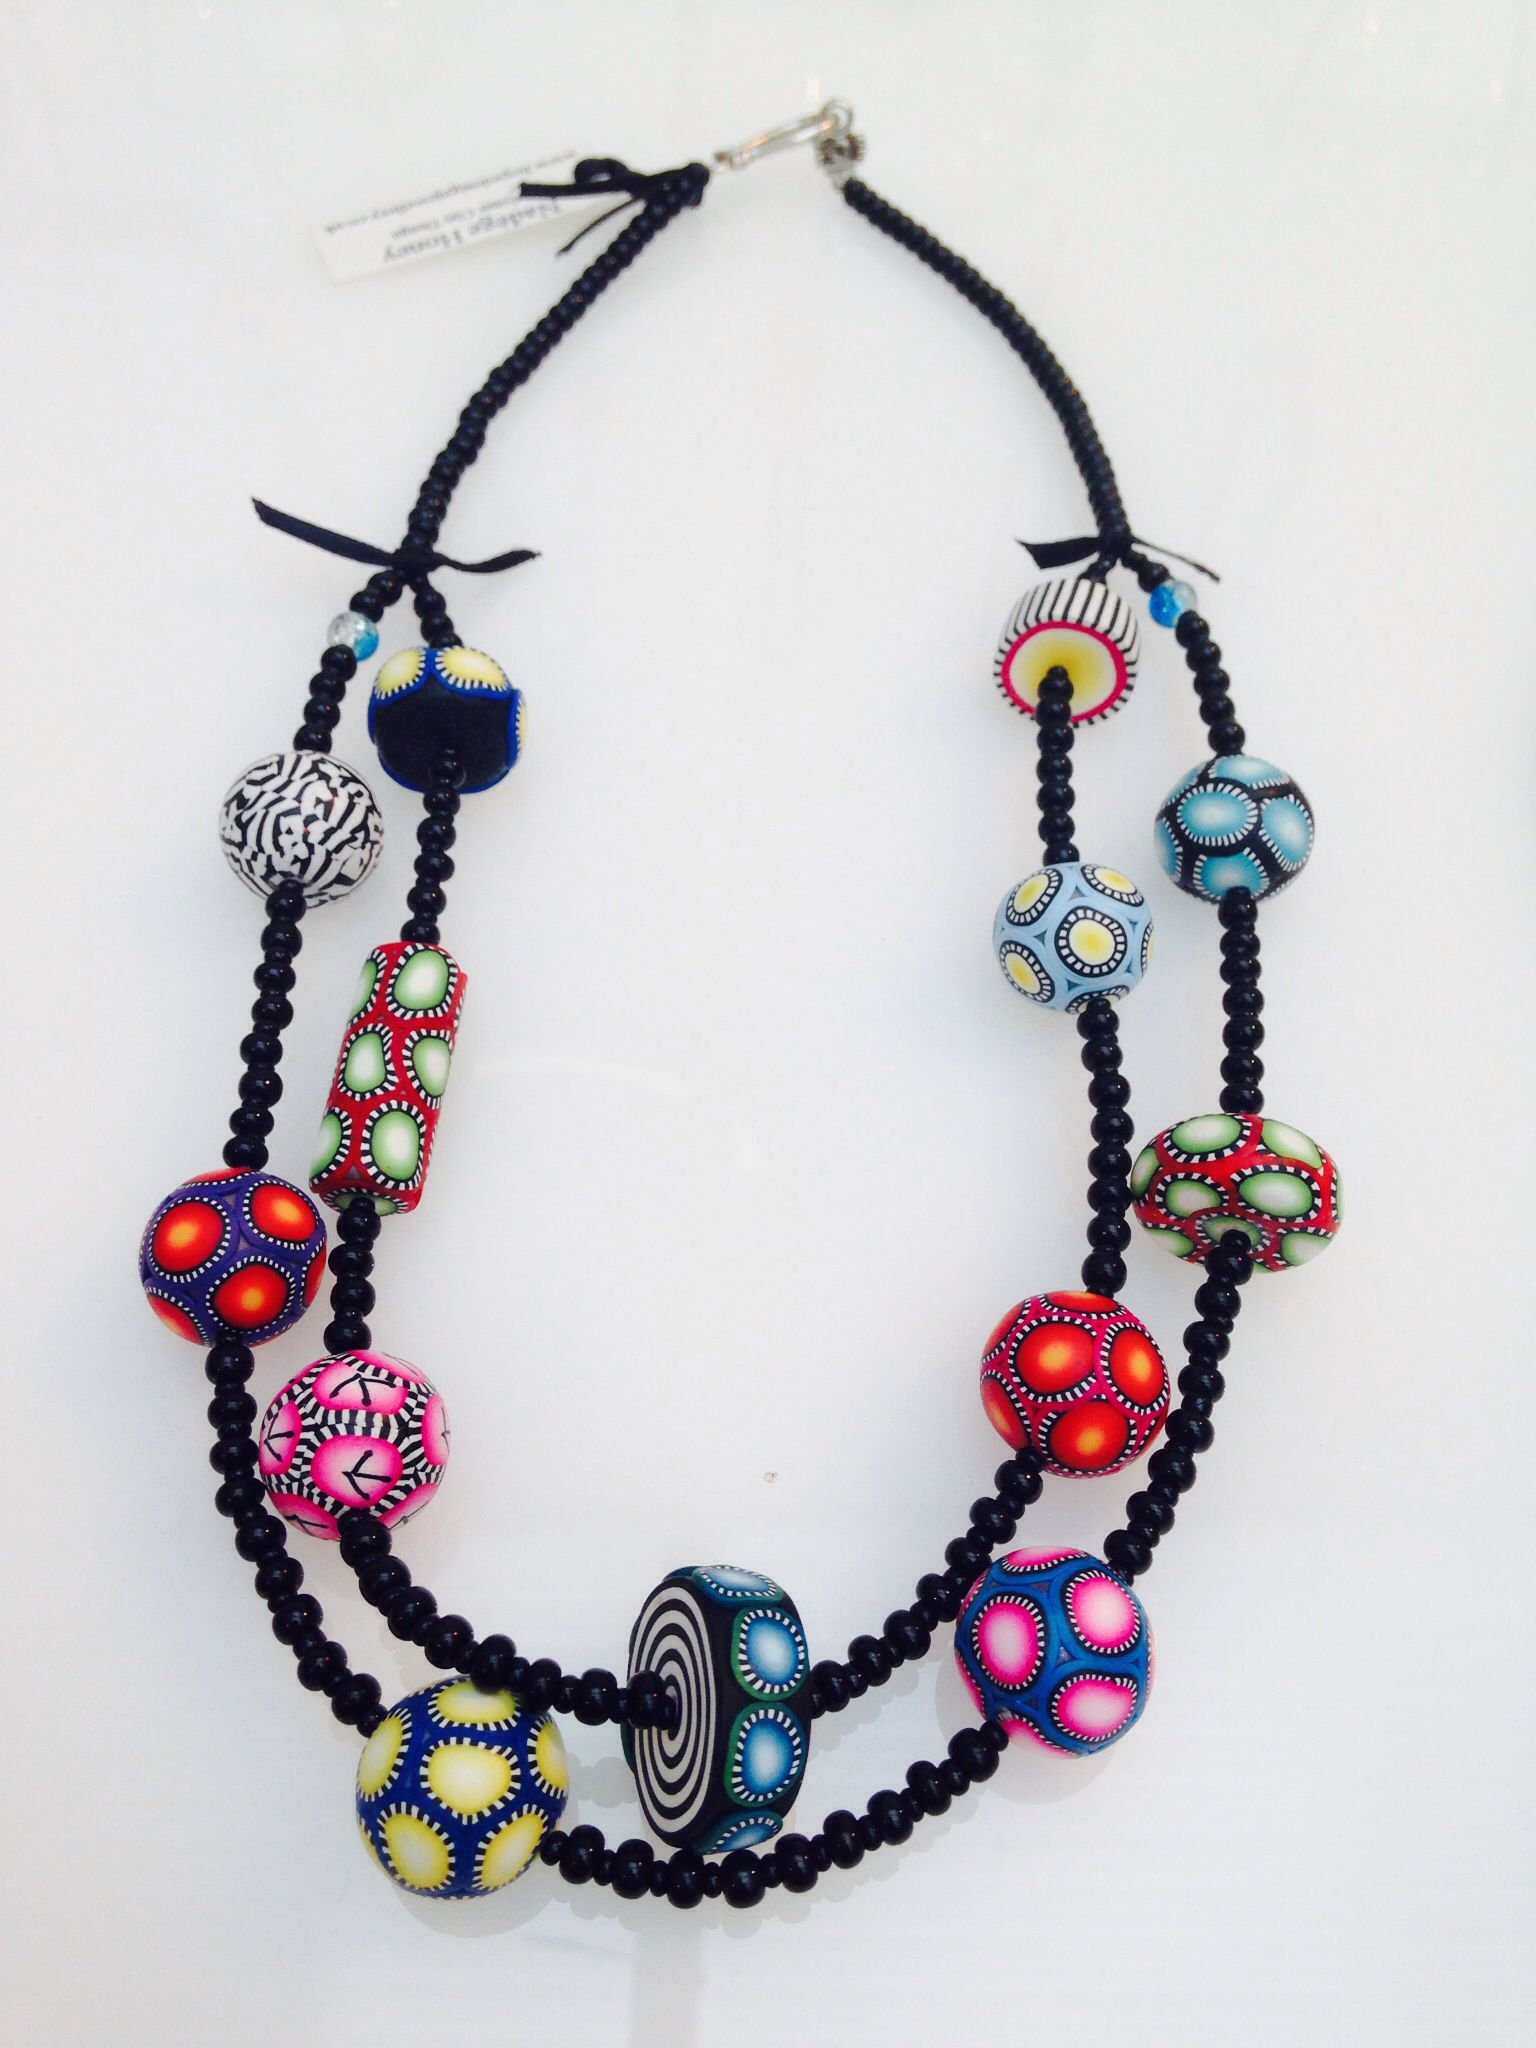 Necklace by Nadege Honey (Hope Design), polymer clay.